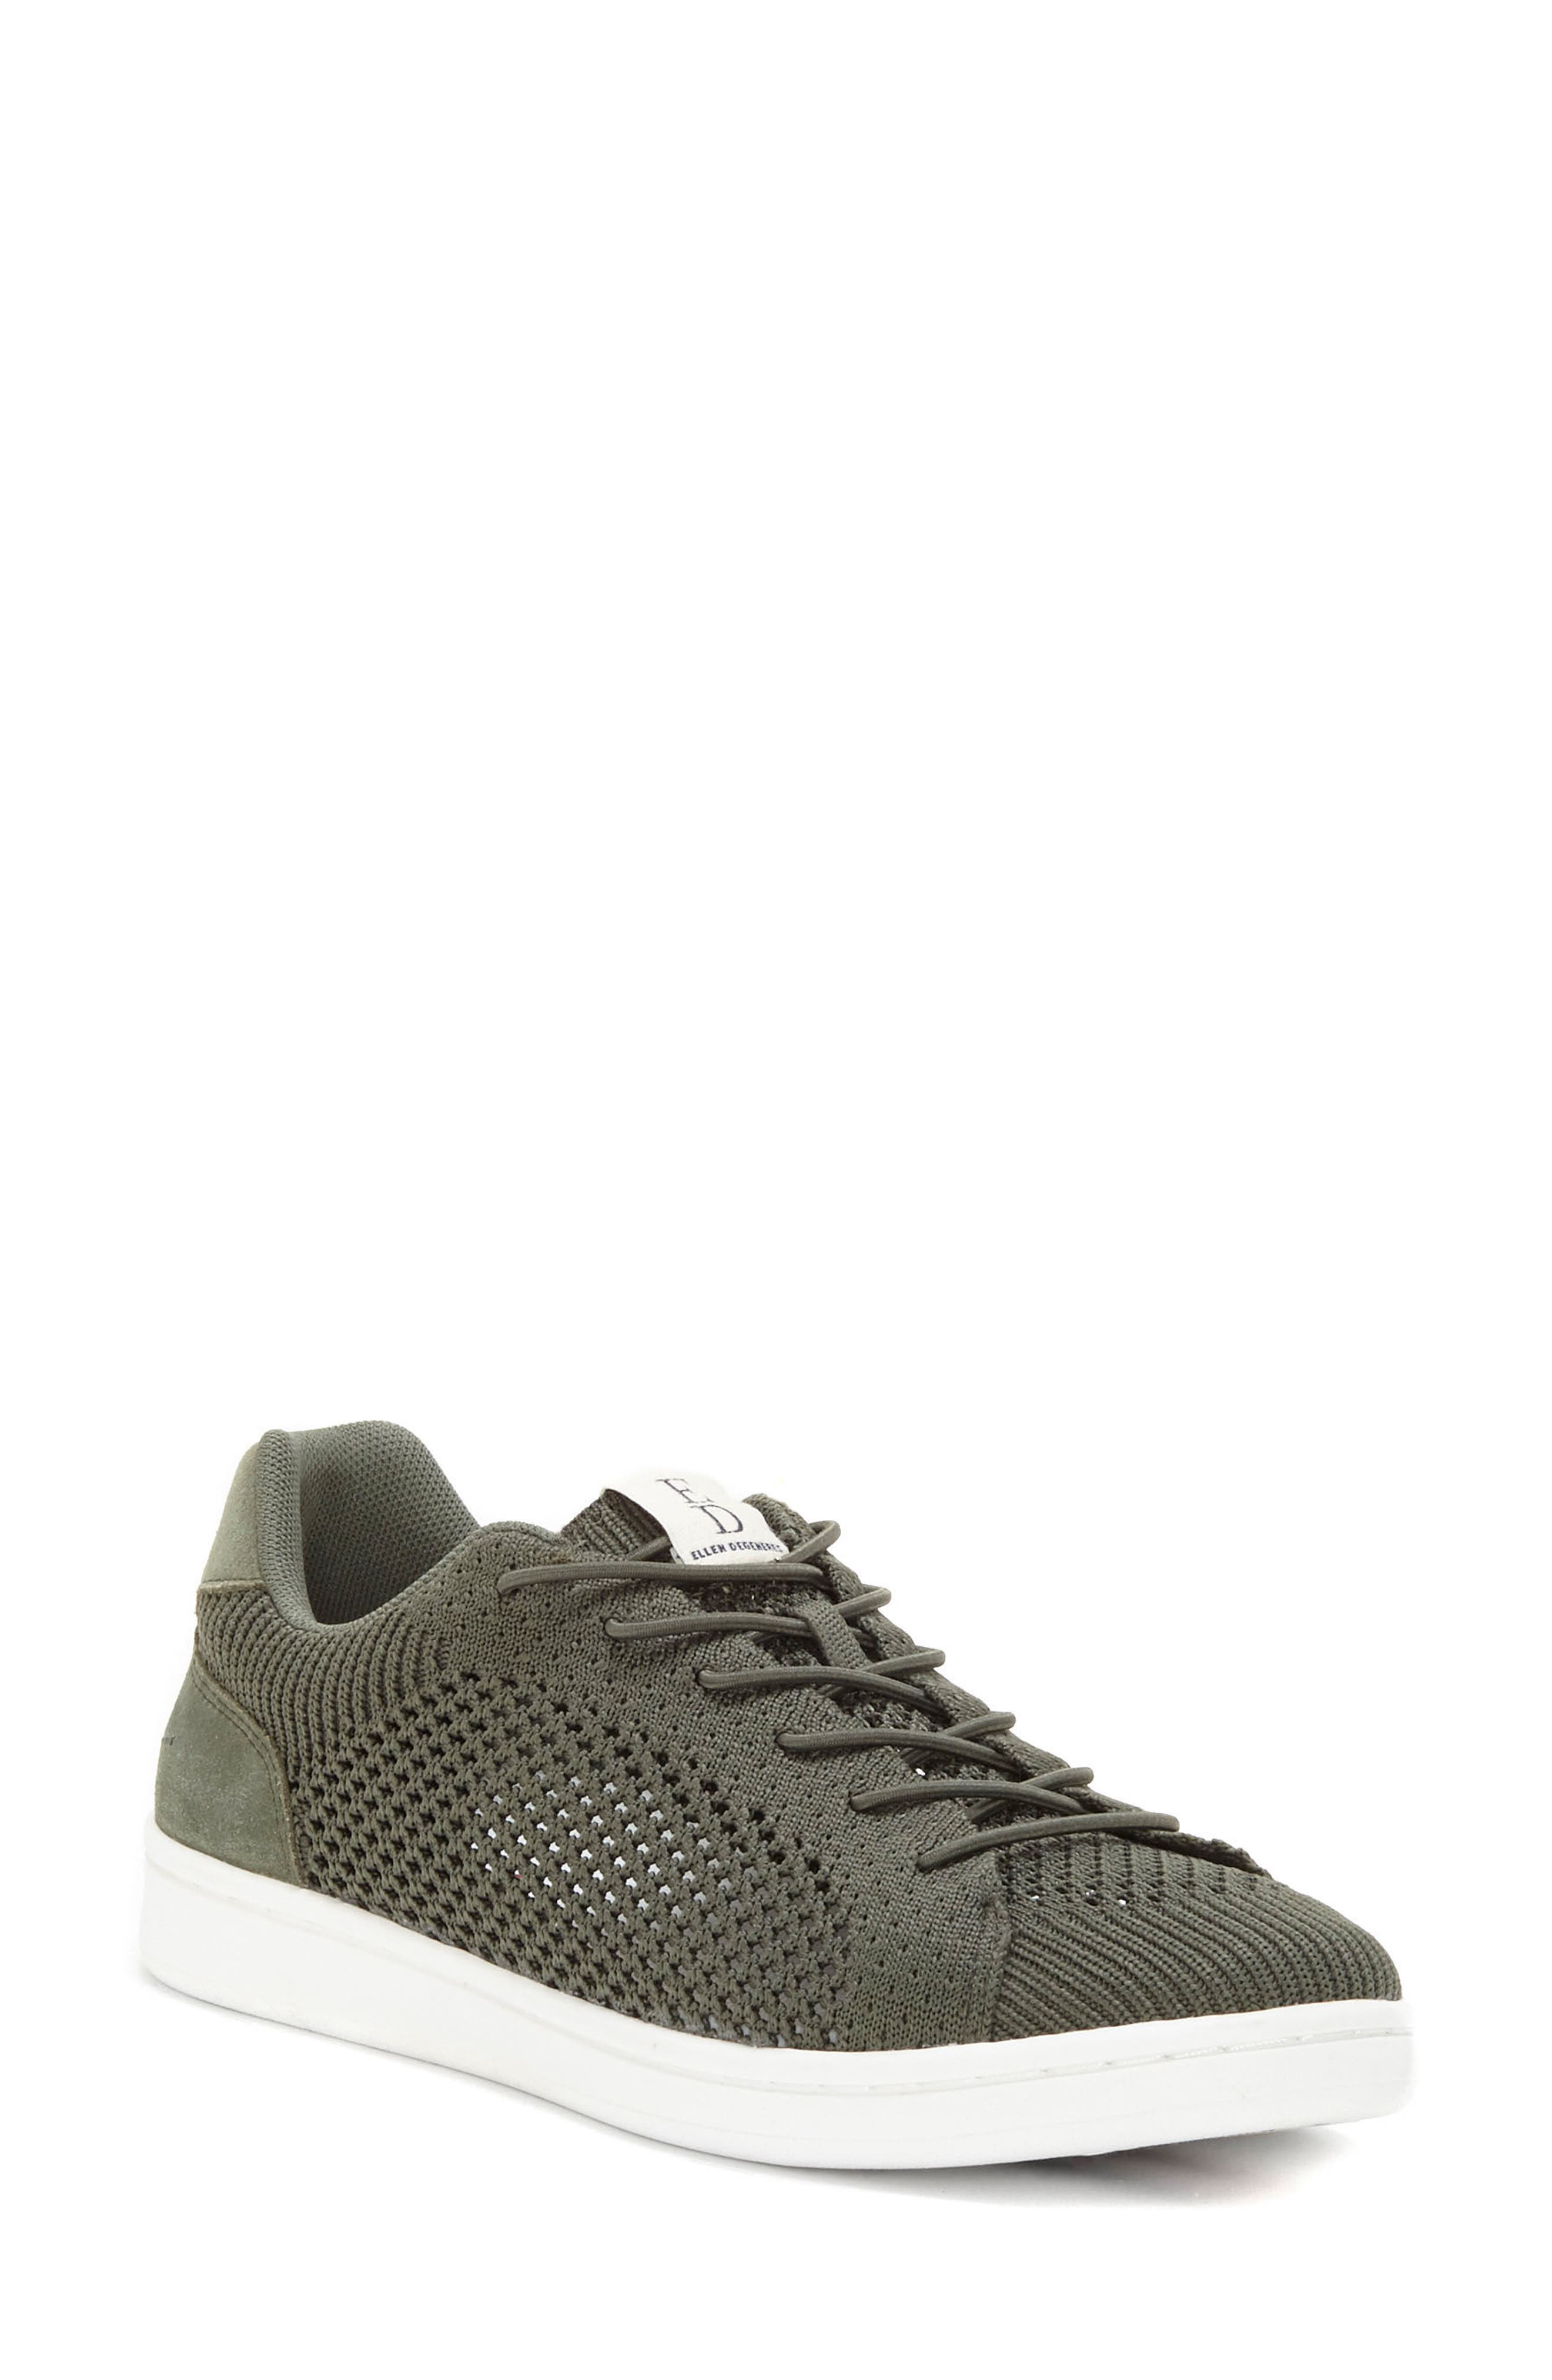 Casie Knit Sneaker,                         Main,                         color, FOREST KNIT FABRIC